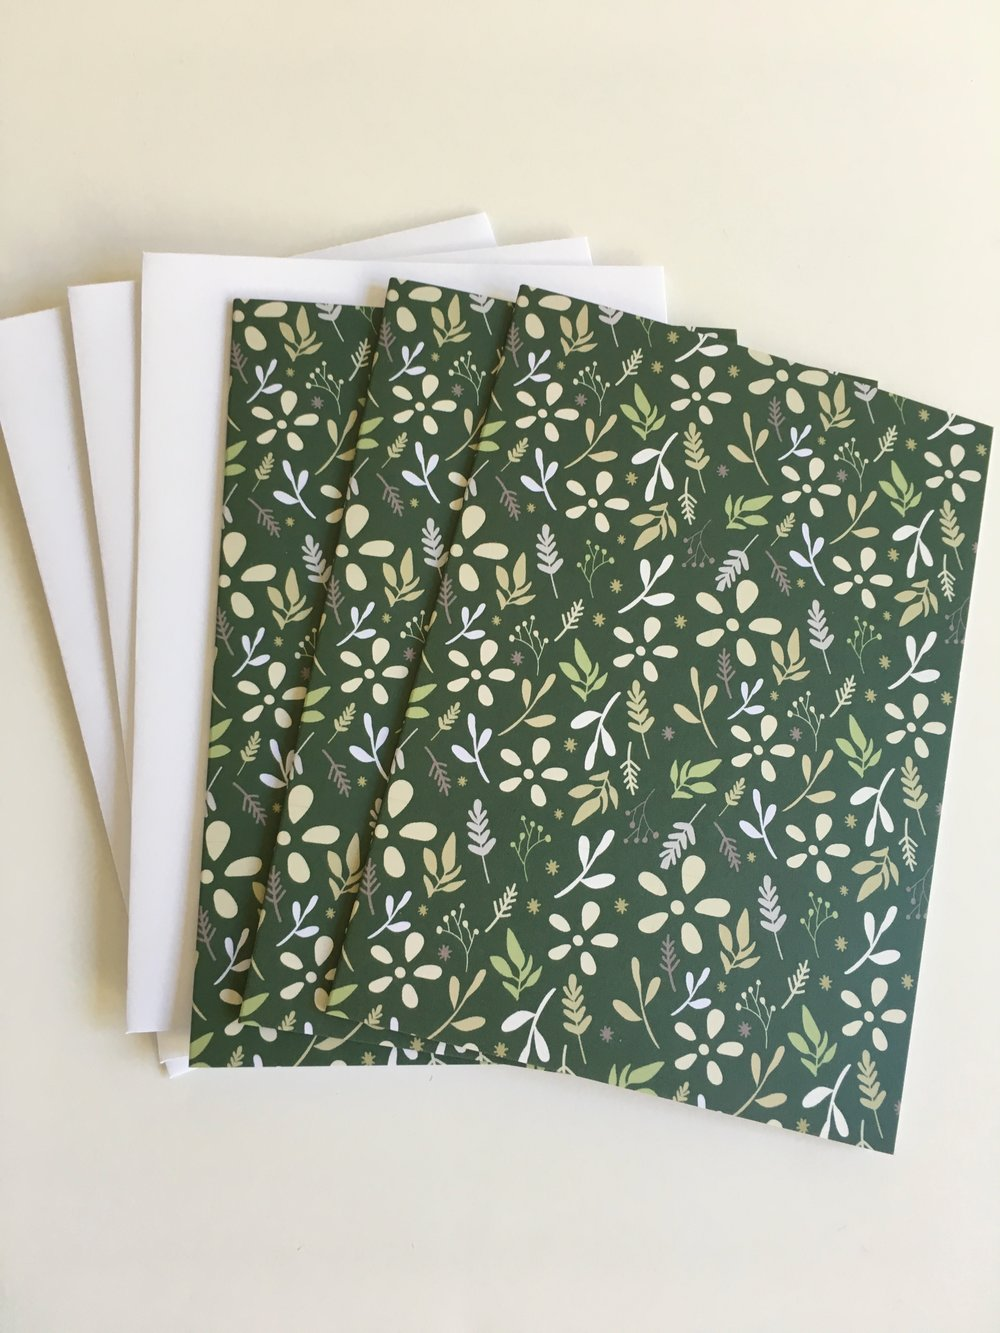 Dark green tossed floral patterned cards